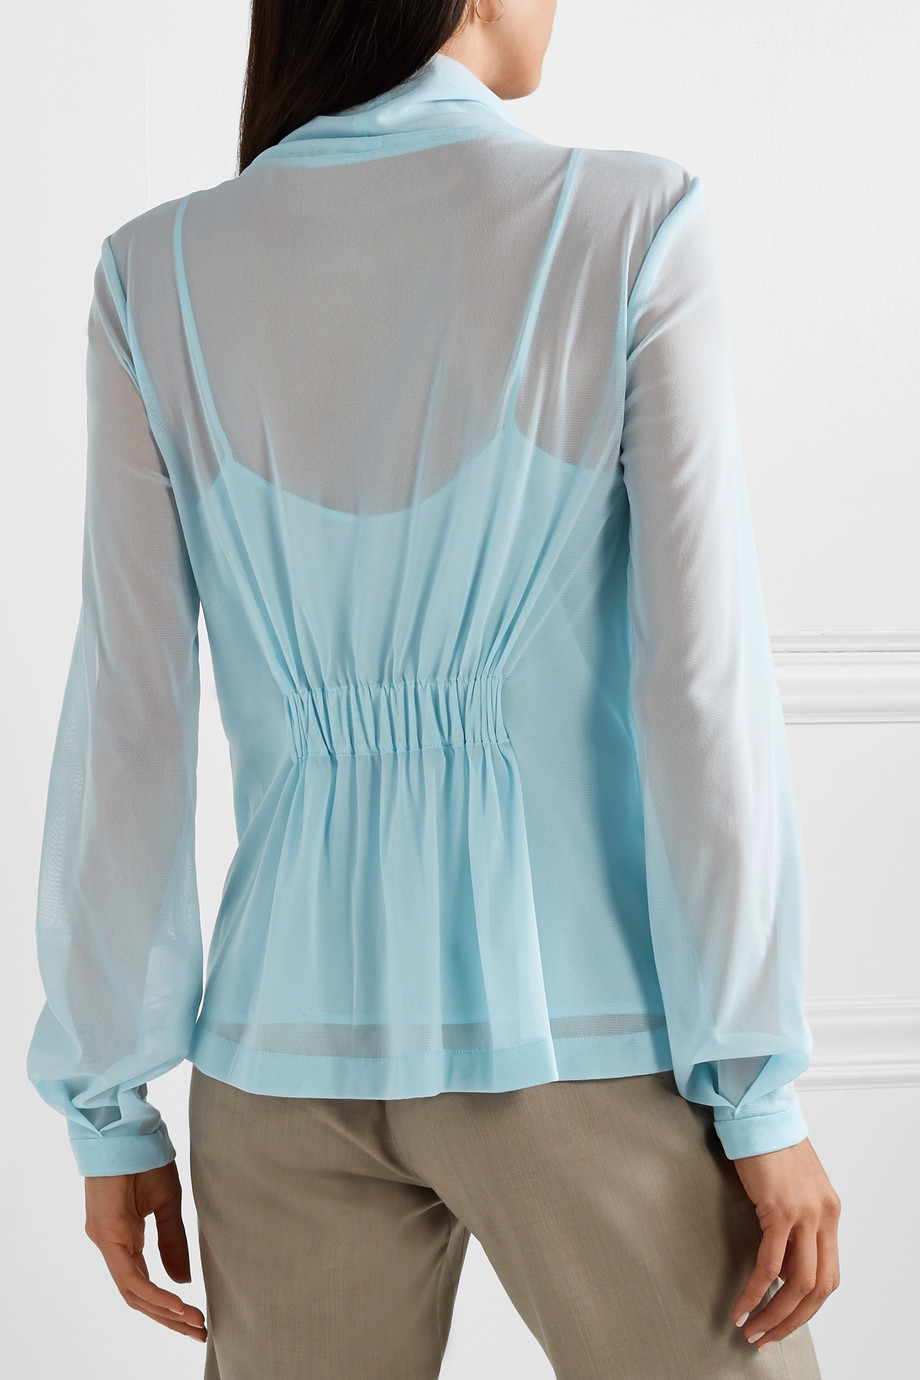 Long sleeved blouse Victoria Beckham buy Long sleeved blouse Victoria Beckham internet shop